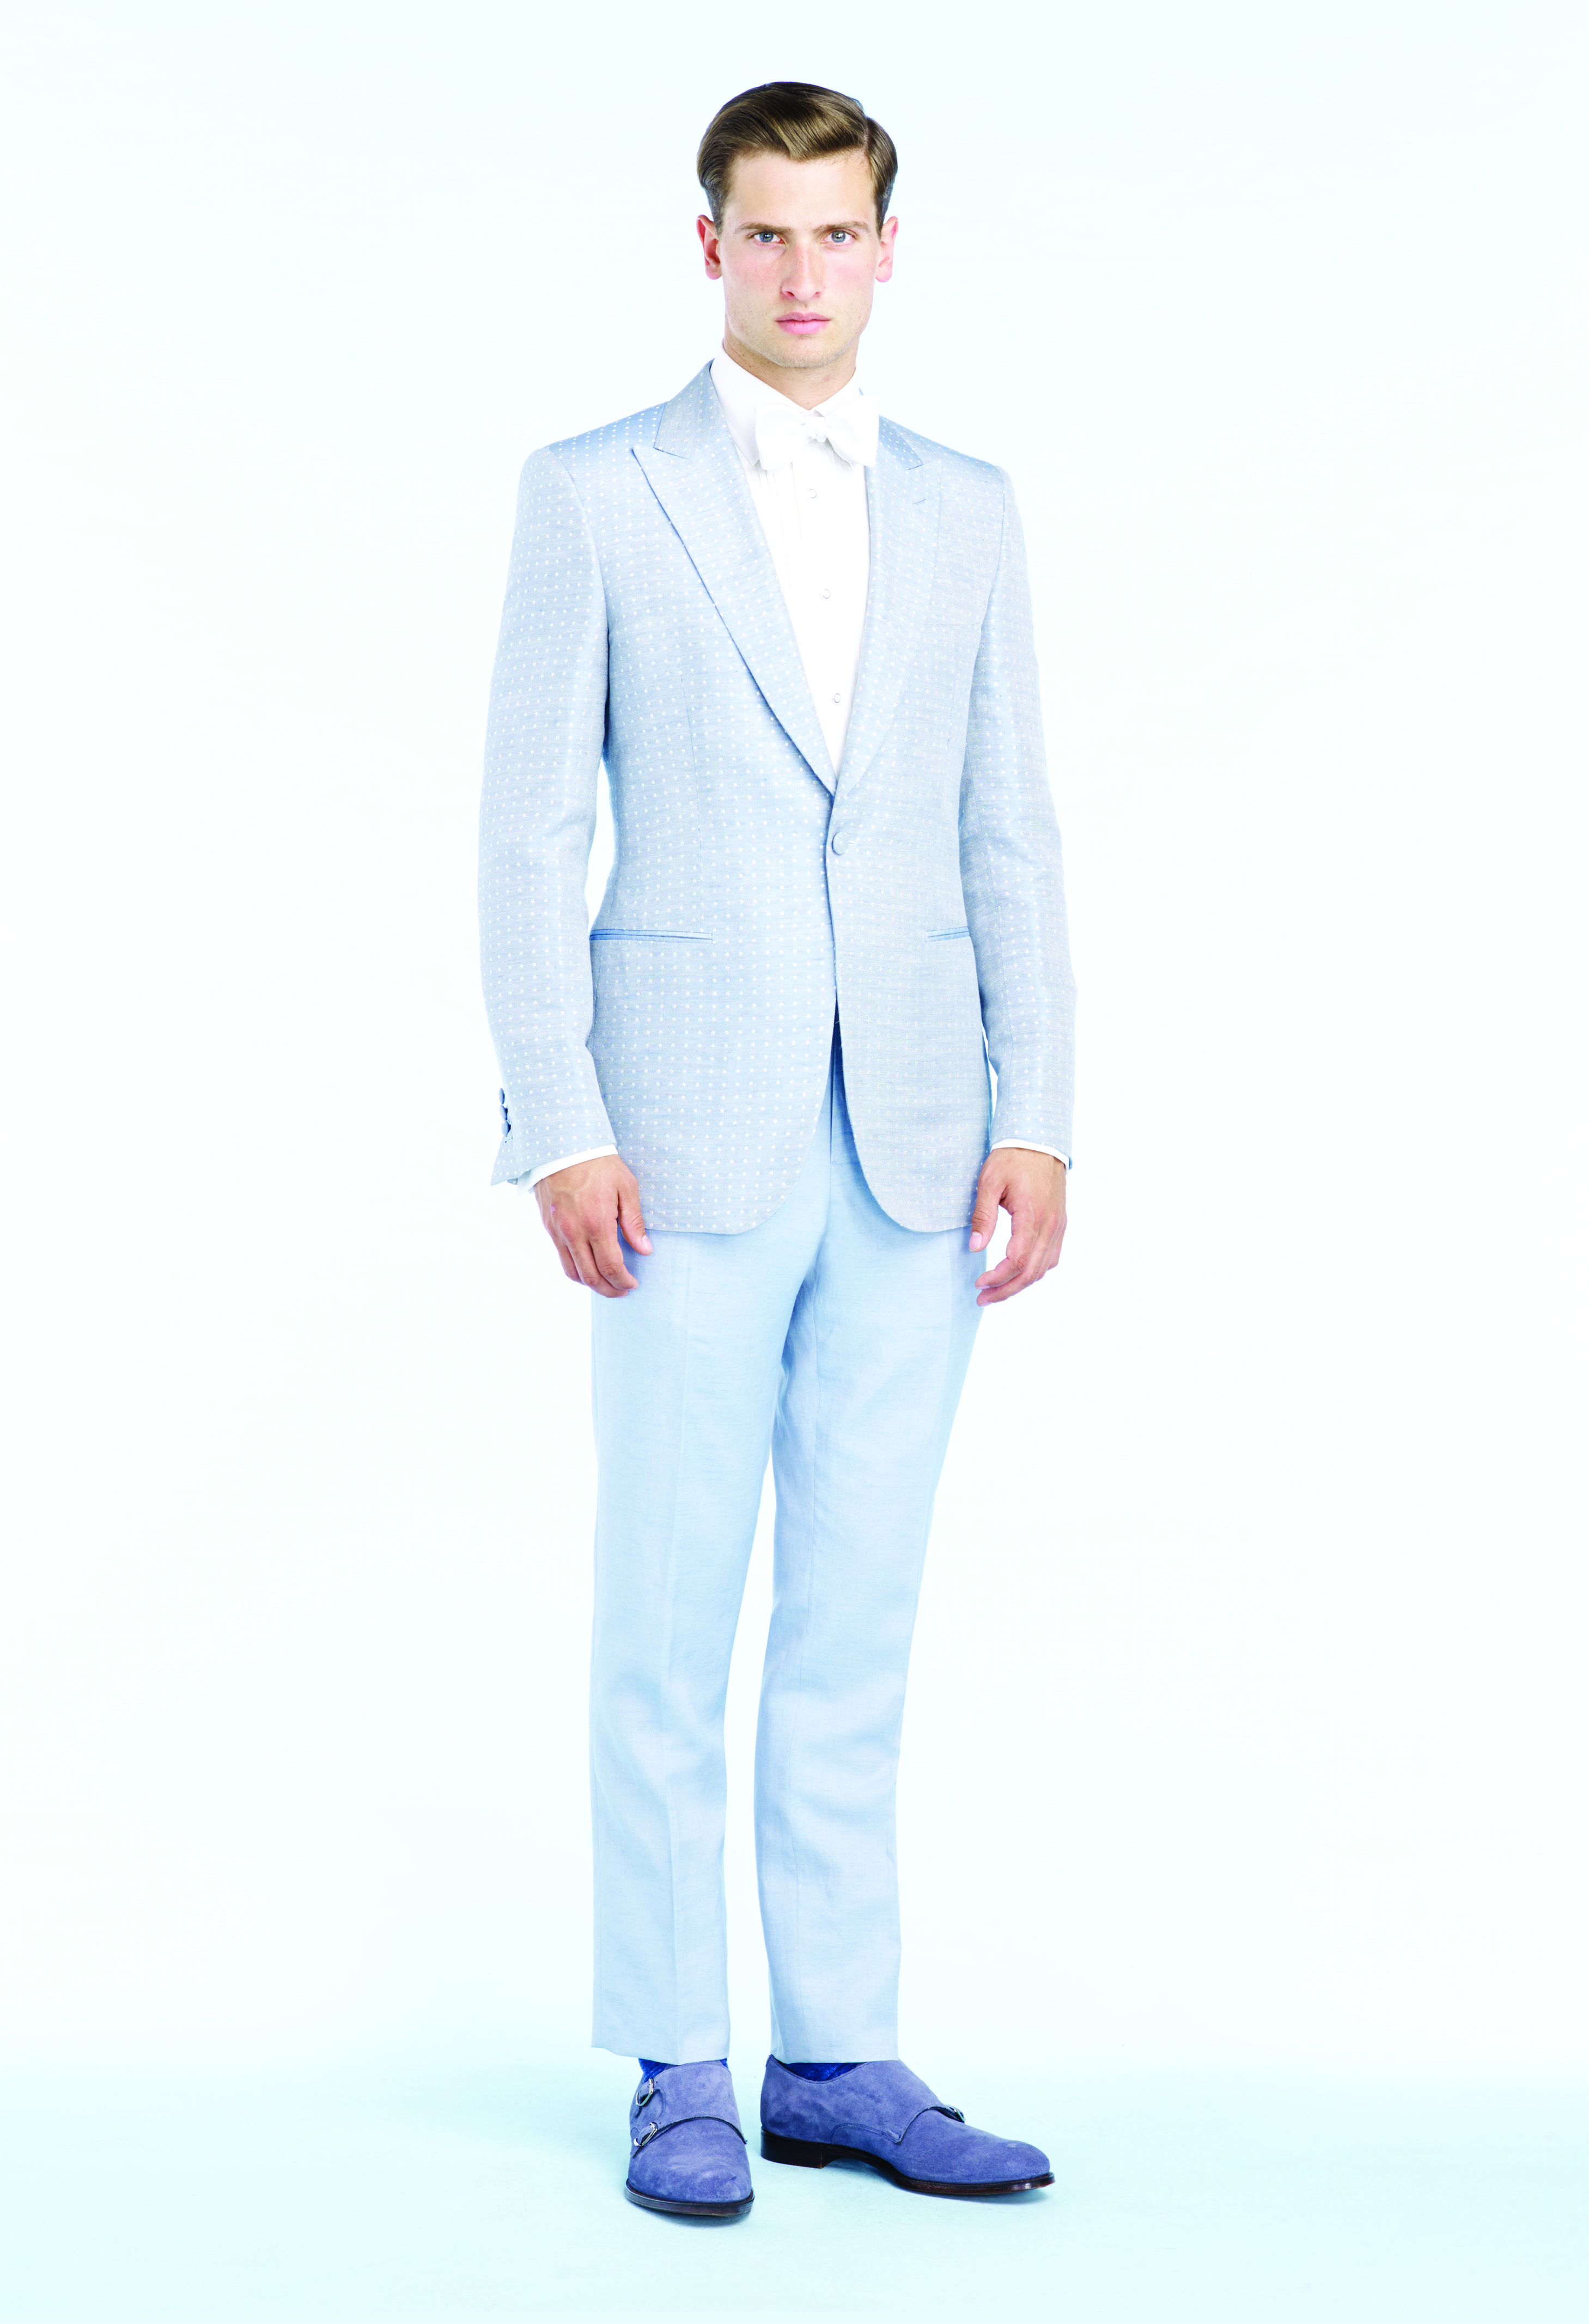 f91c05cc4f Pale blue silk/linen polka-dot jacquard dinner jacket, Powder blue linen  trousers, White, cotton dress shirt, White silk bow tie and Powder blue  suede ...